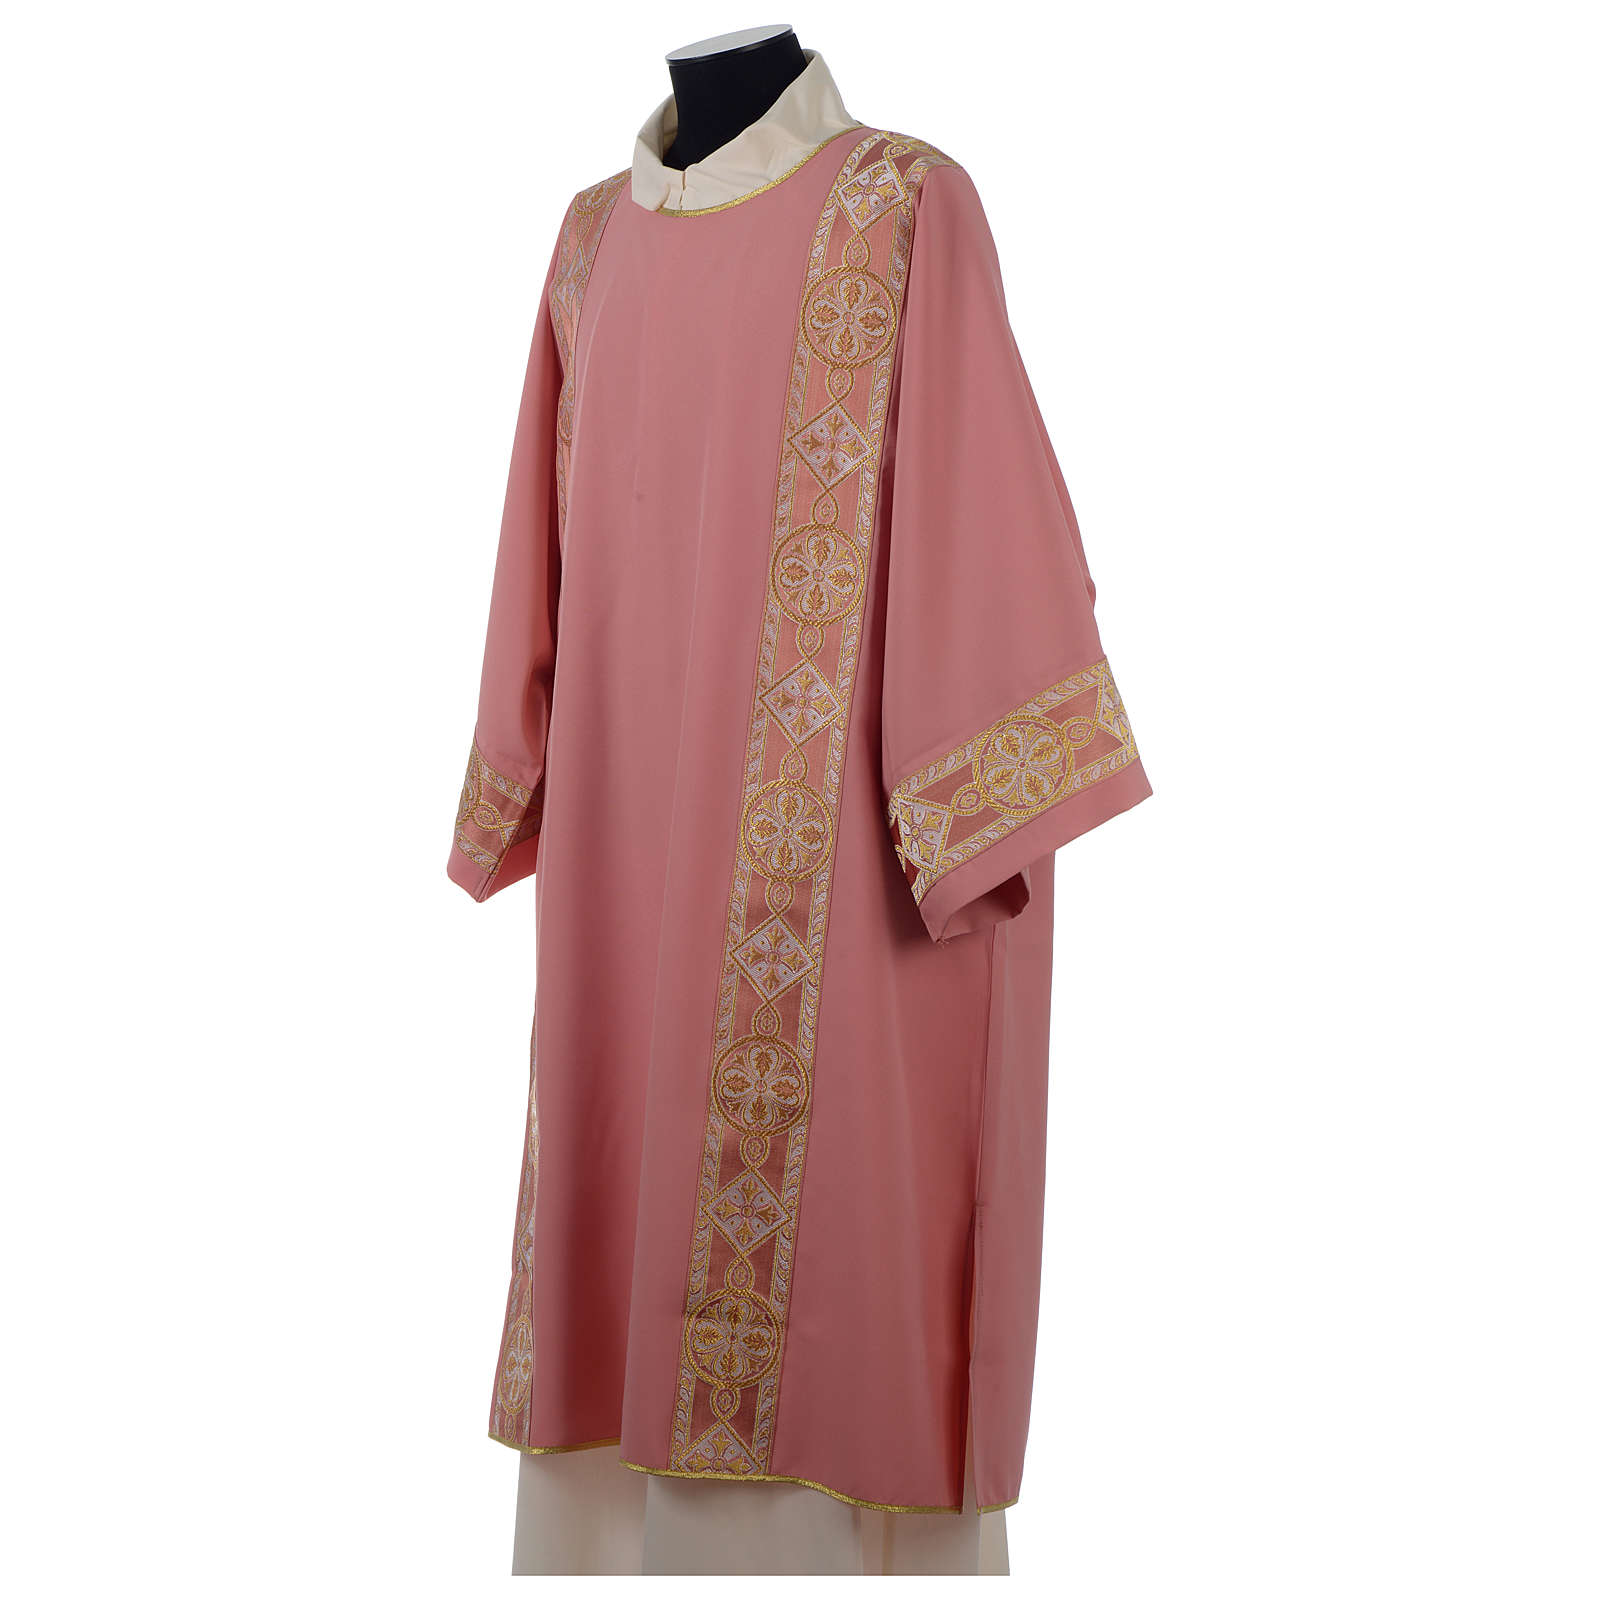 Dalmatic with gallons applied on the front in Vatican fabric, rose 4